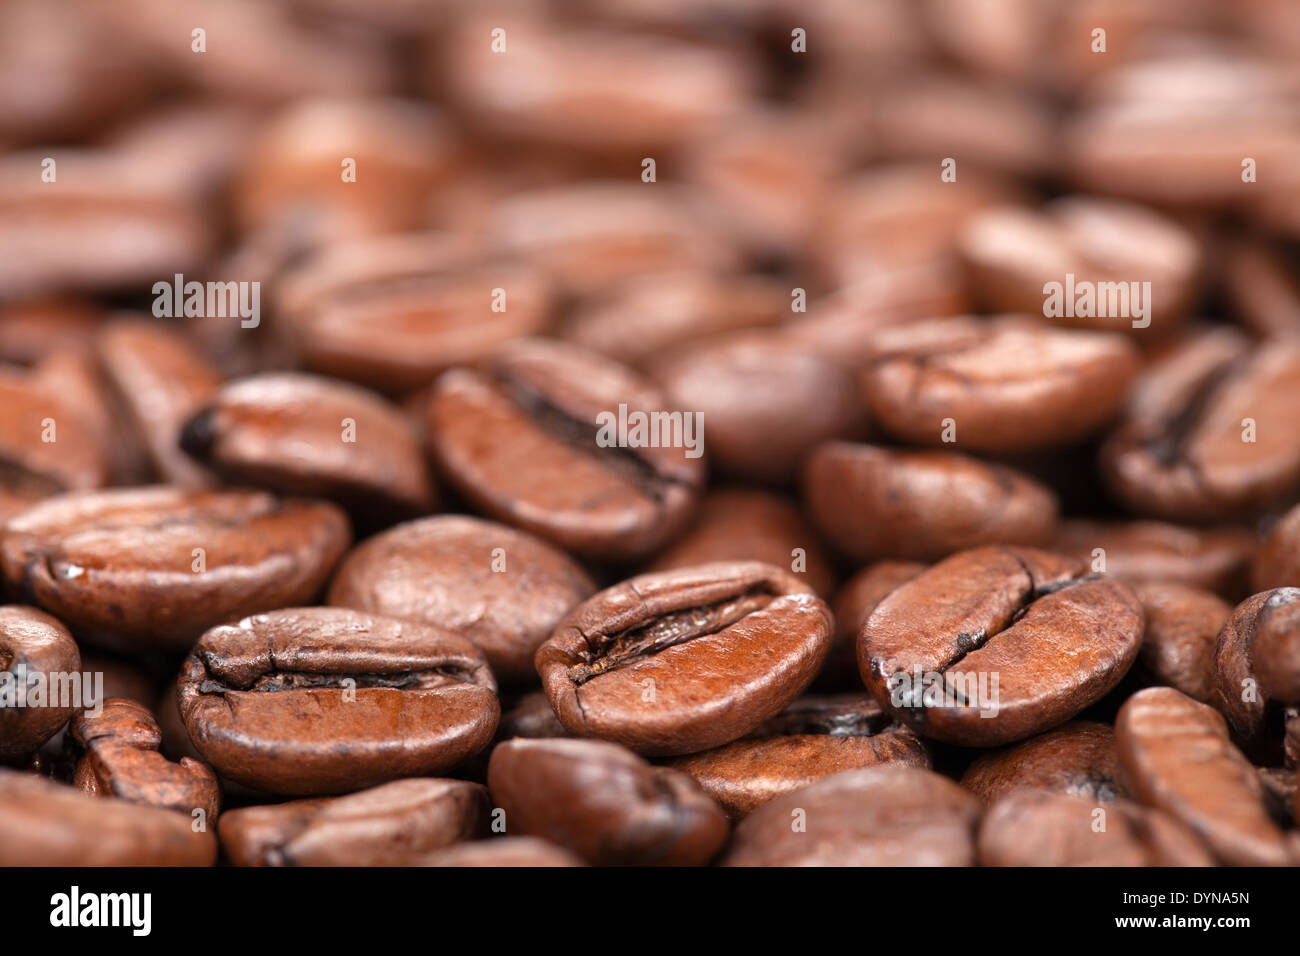 Macro shot of coffee beans with shallow depth of field and plenty of copy space - Stock Image